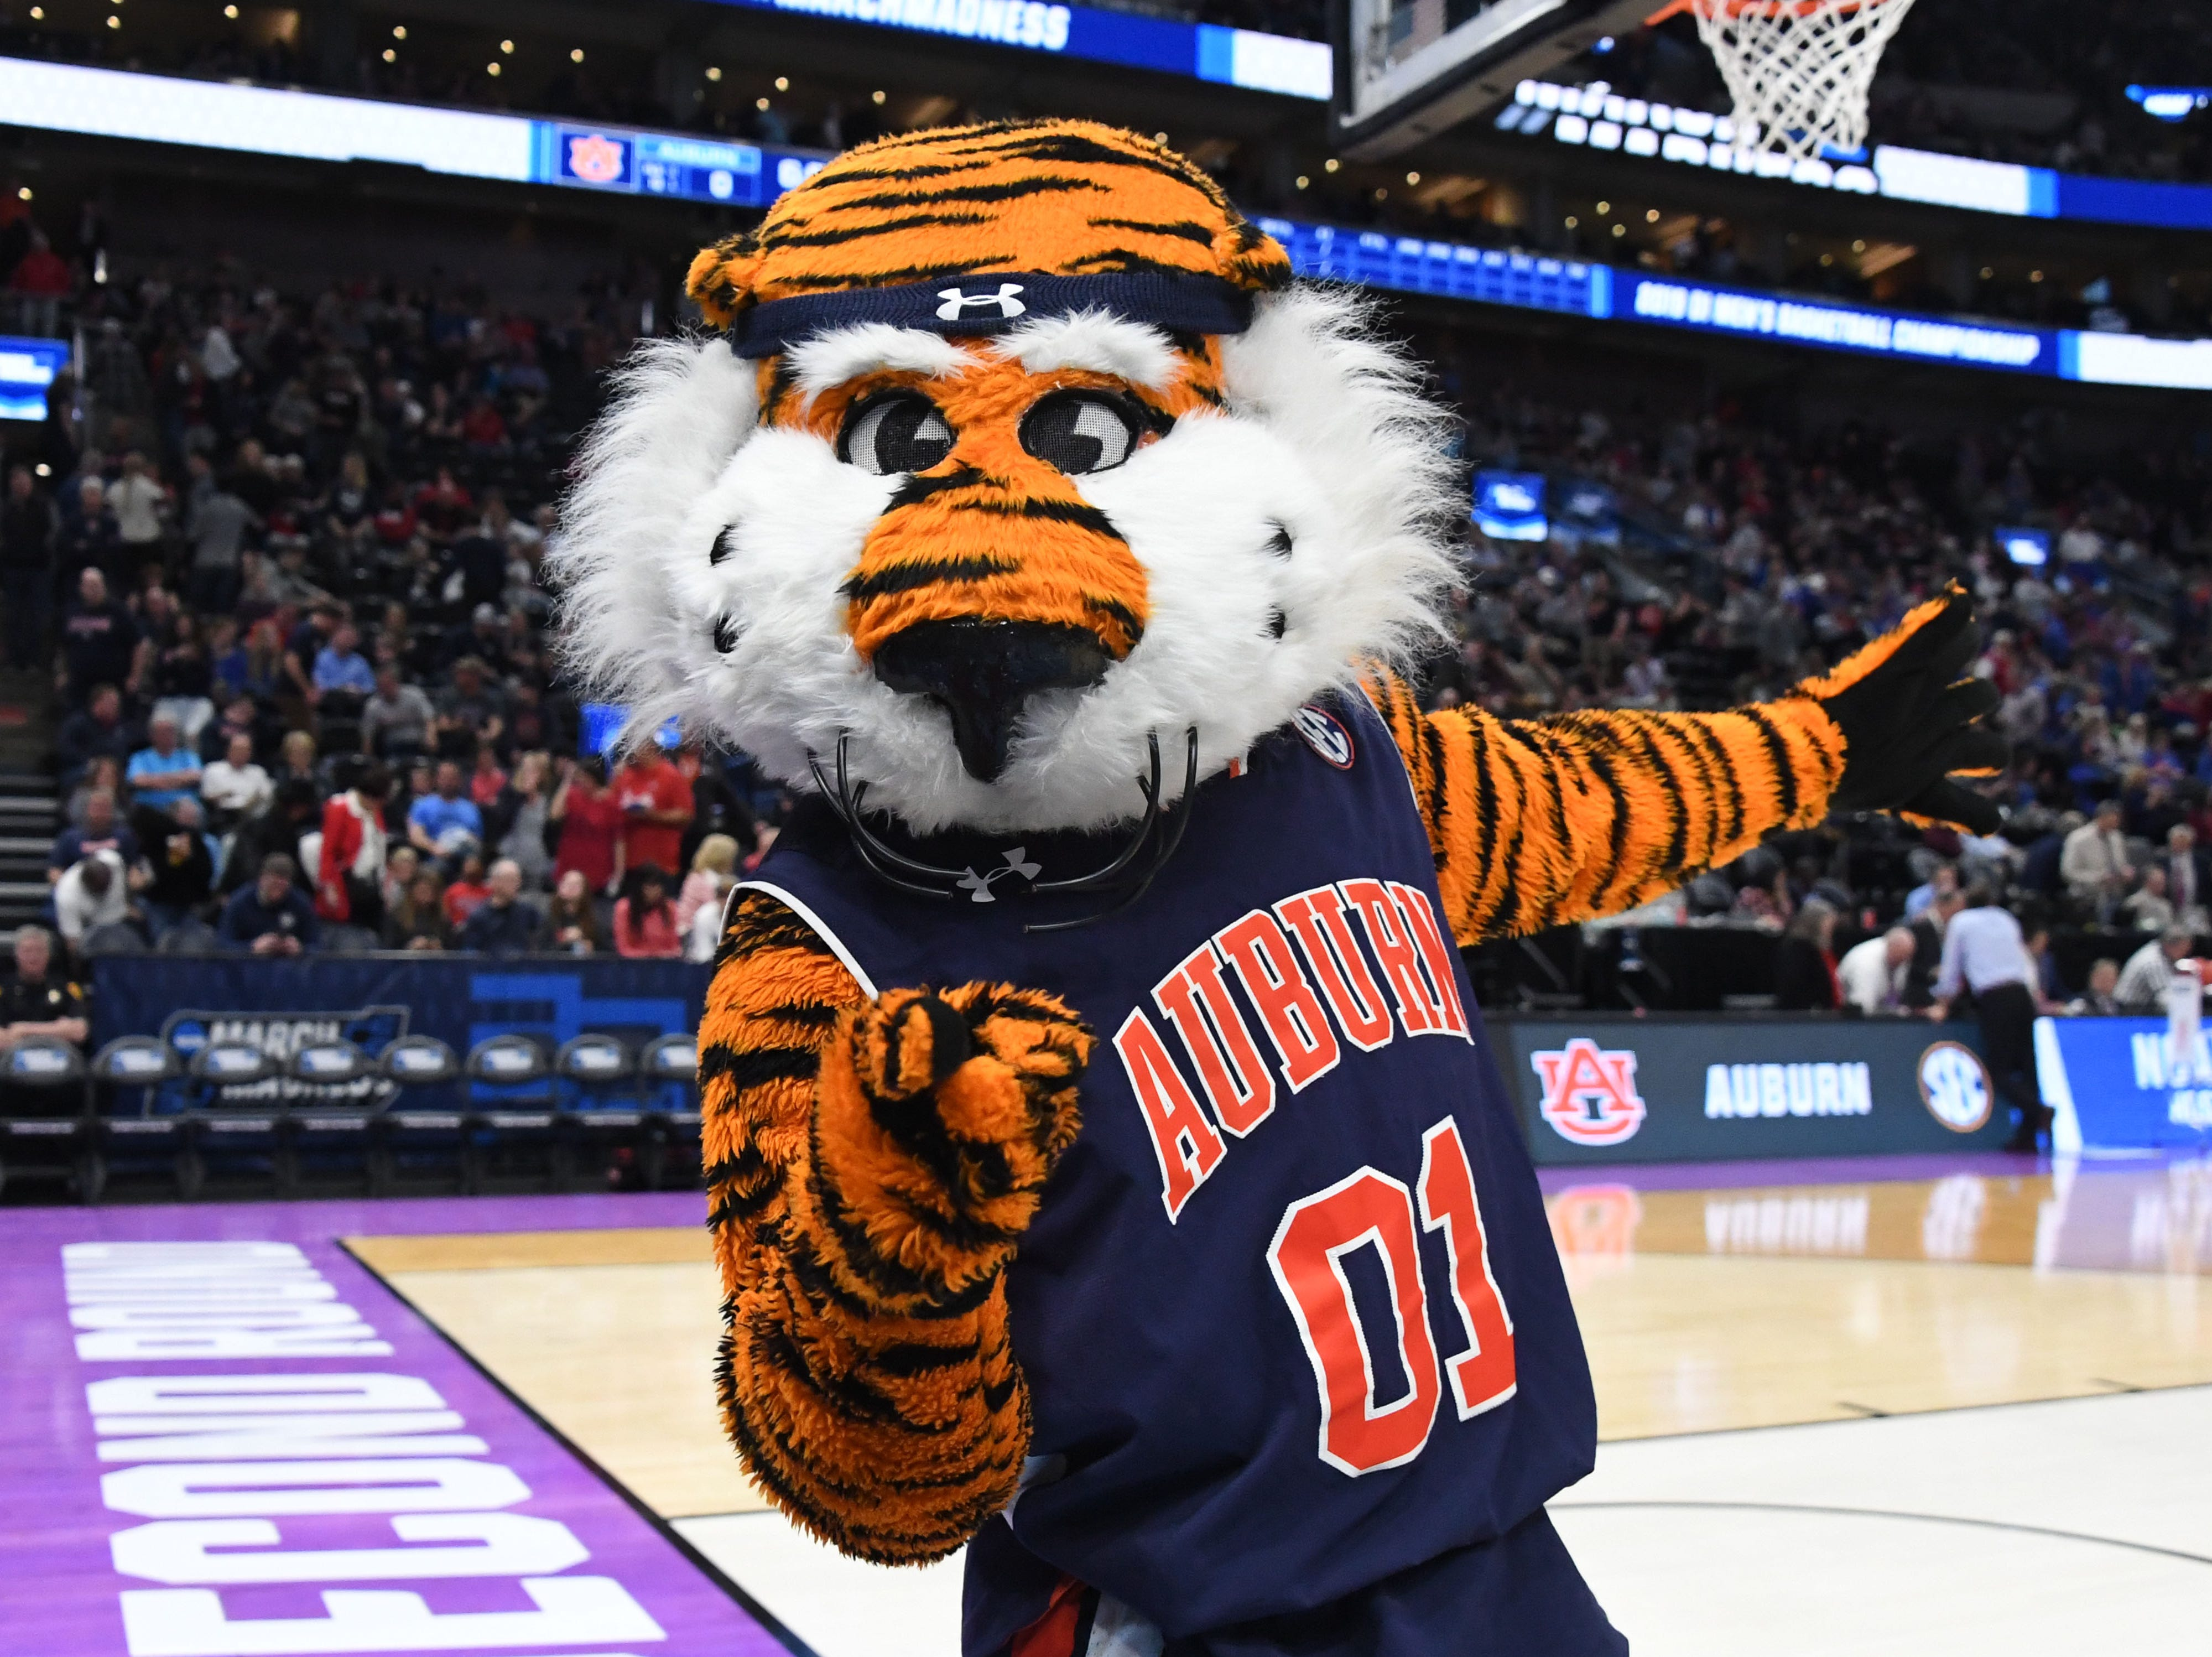 Mar 23, 2019; Salt Lake City, UT, USA; Auburn Tigers mascot Aubie performs before the game in the second round of the 2019 NCAA Tournament against the Kansas Jayhawks at Vivint Smart Home Arena. Mandatory Credit: Kirby Lee-USA TODAY Sports